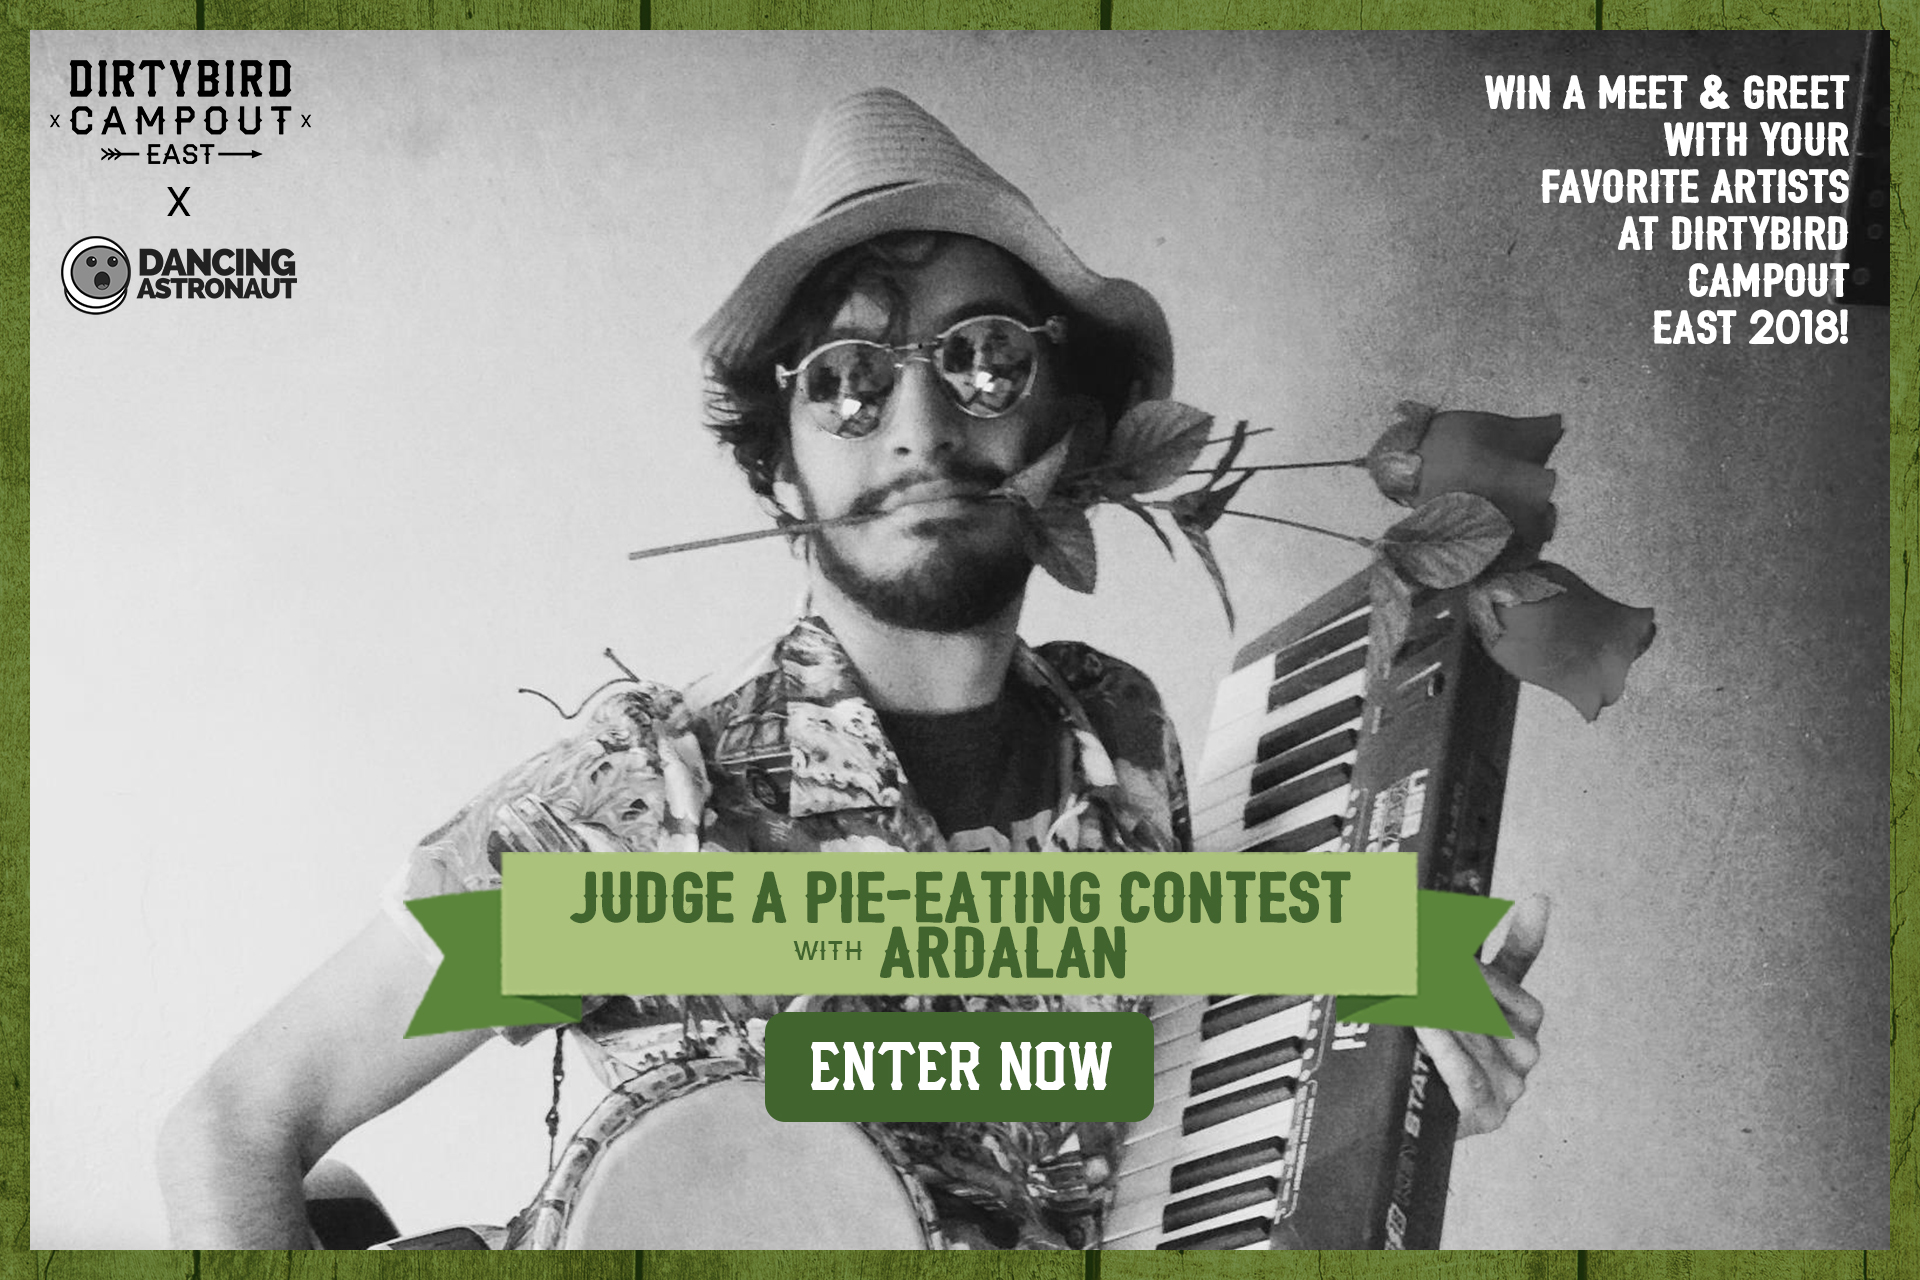 Enter to judge a pie eating with ardalan dancing astronaut win a chance to judge a pie eating contest with ardalan at dirtybird campout east coast 2018 kristyandbryce Gallery